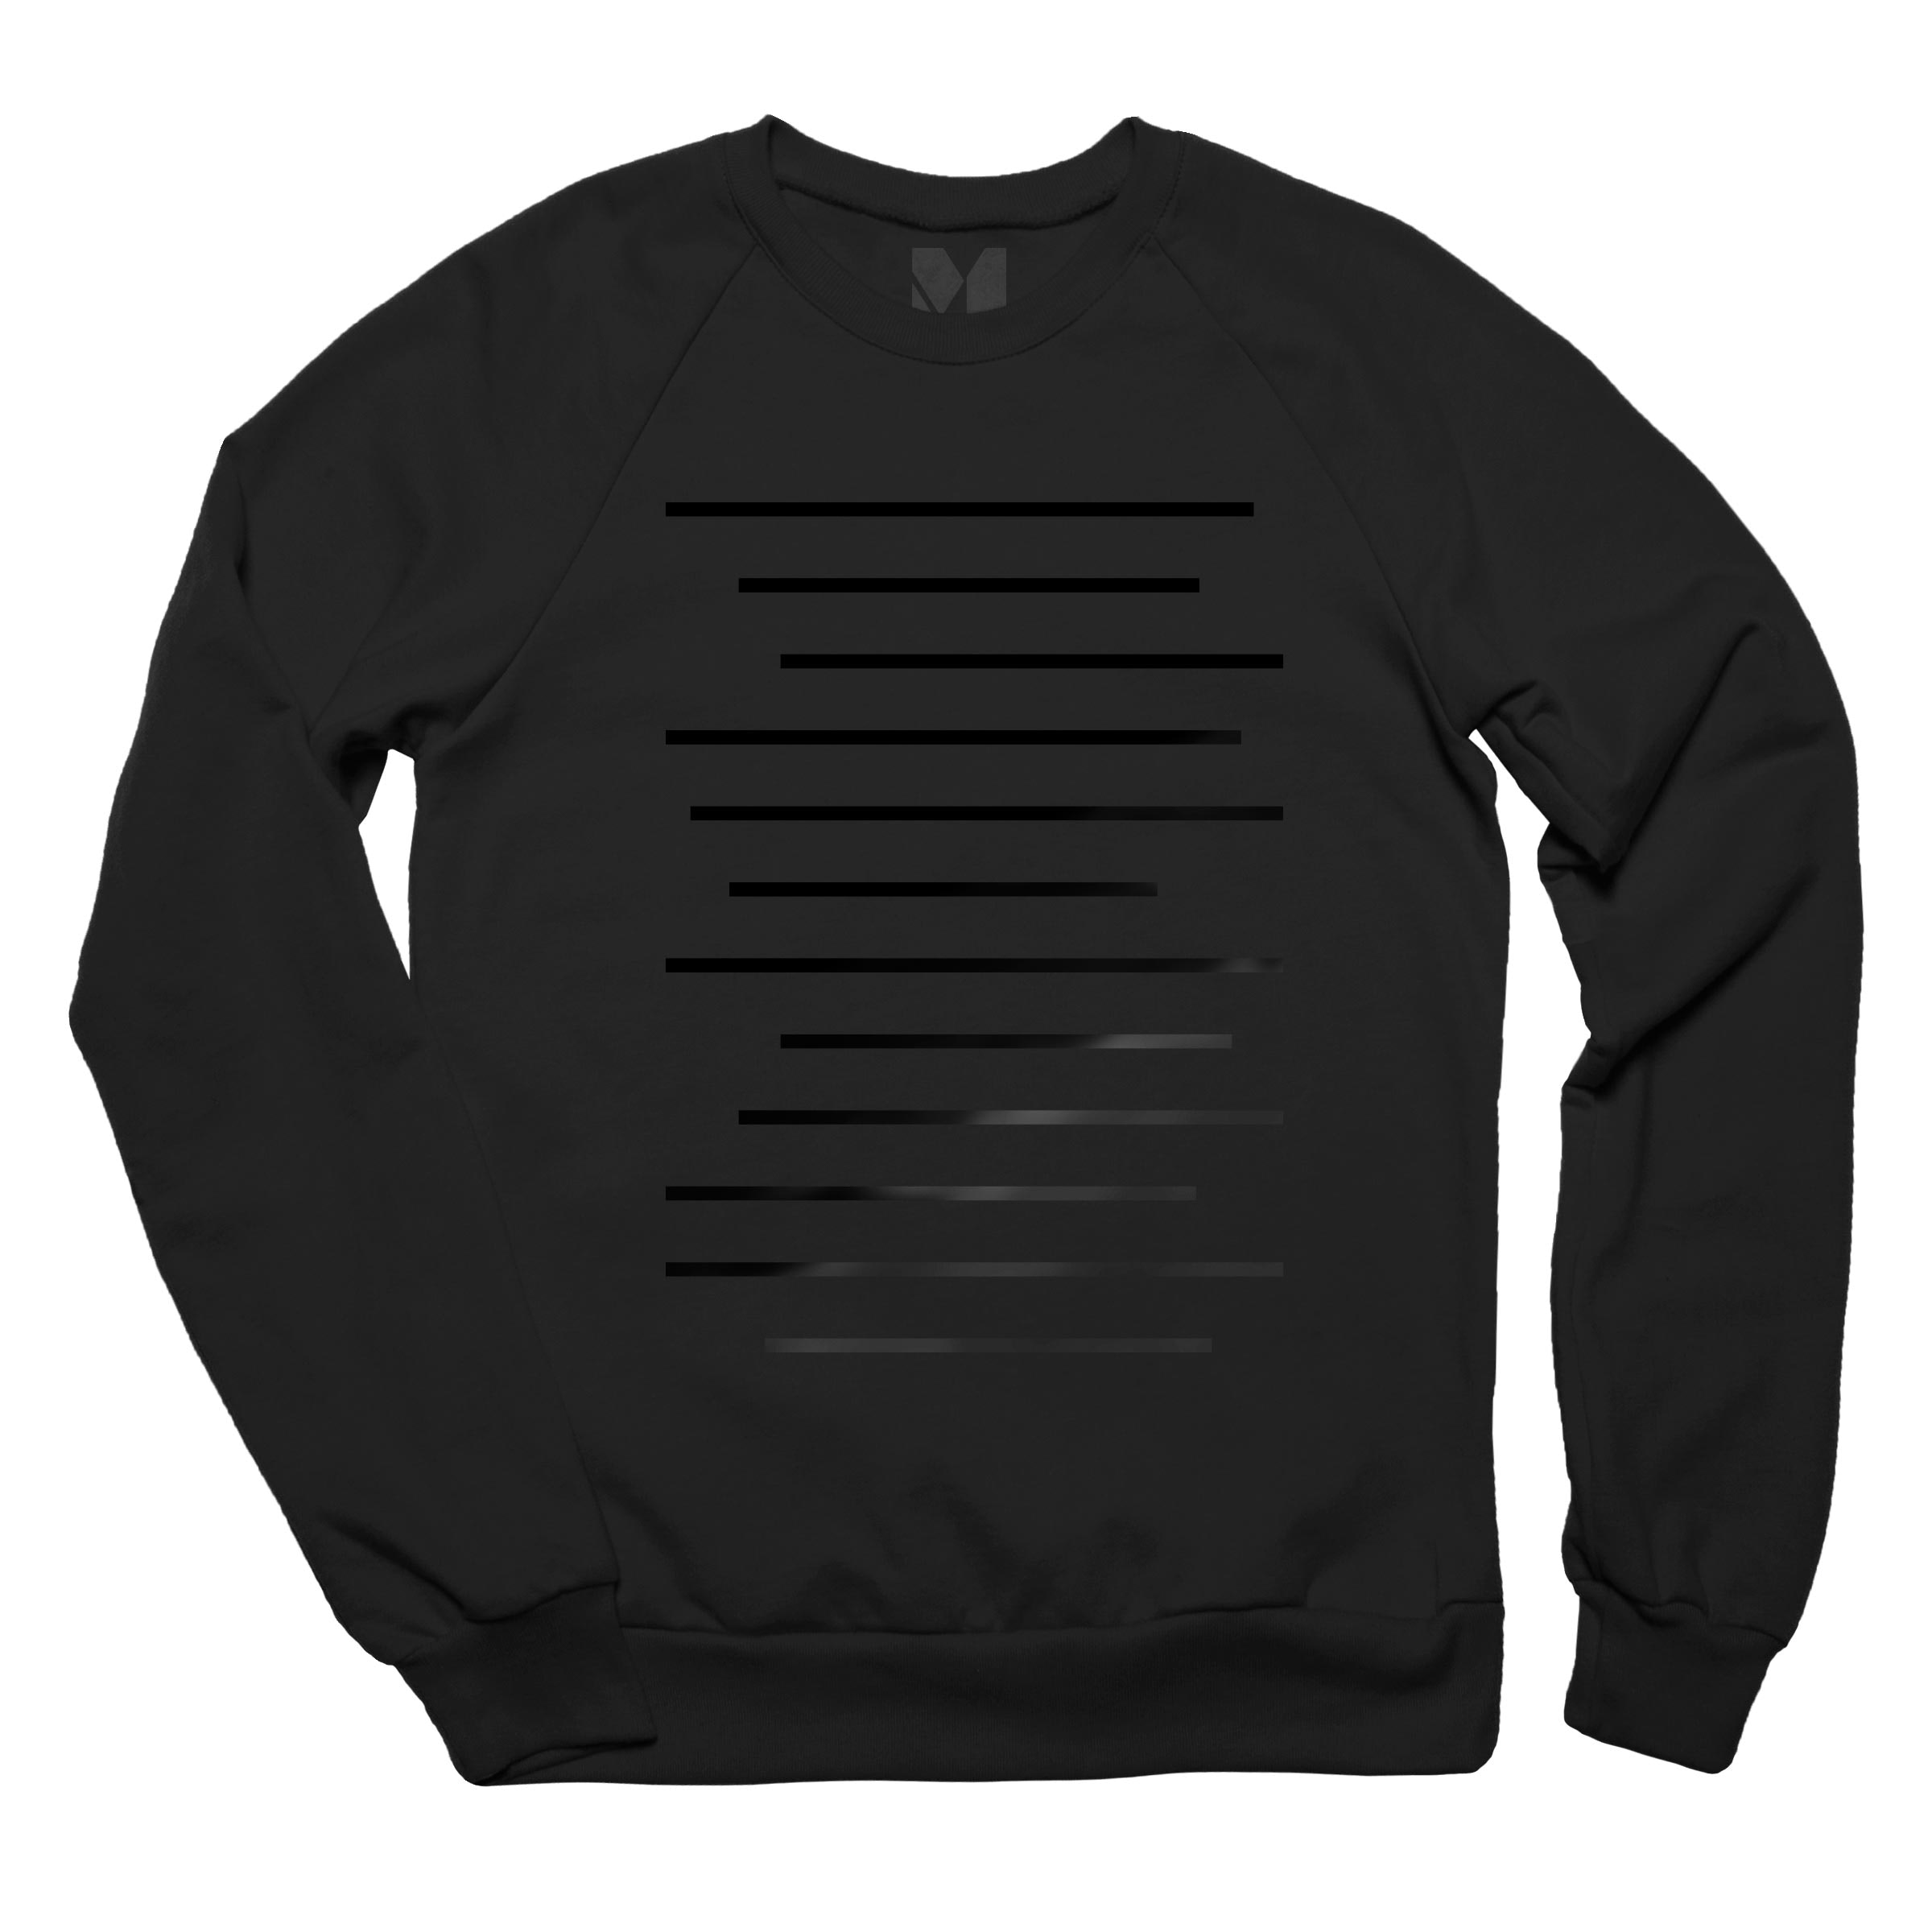 Dozen - Black Friday Pullover Crewneck